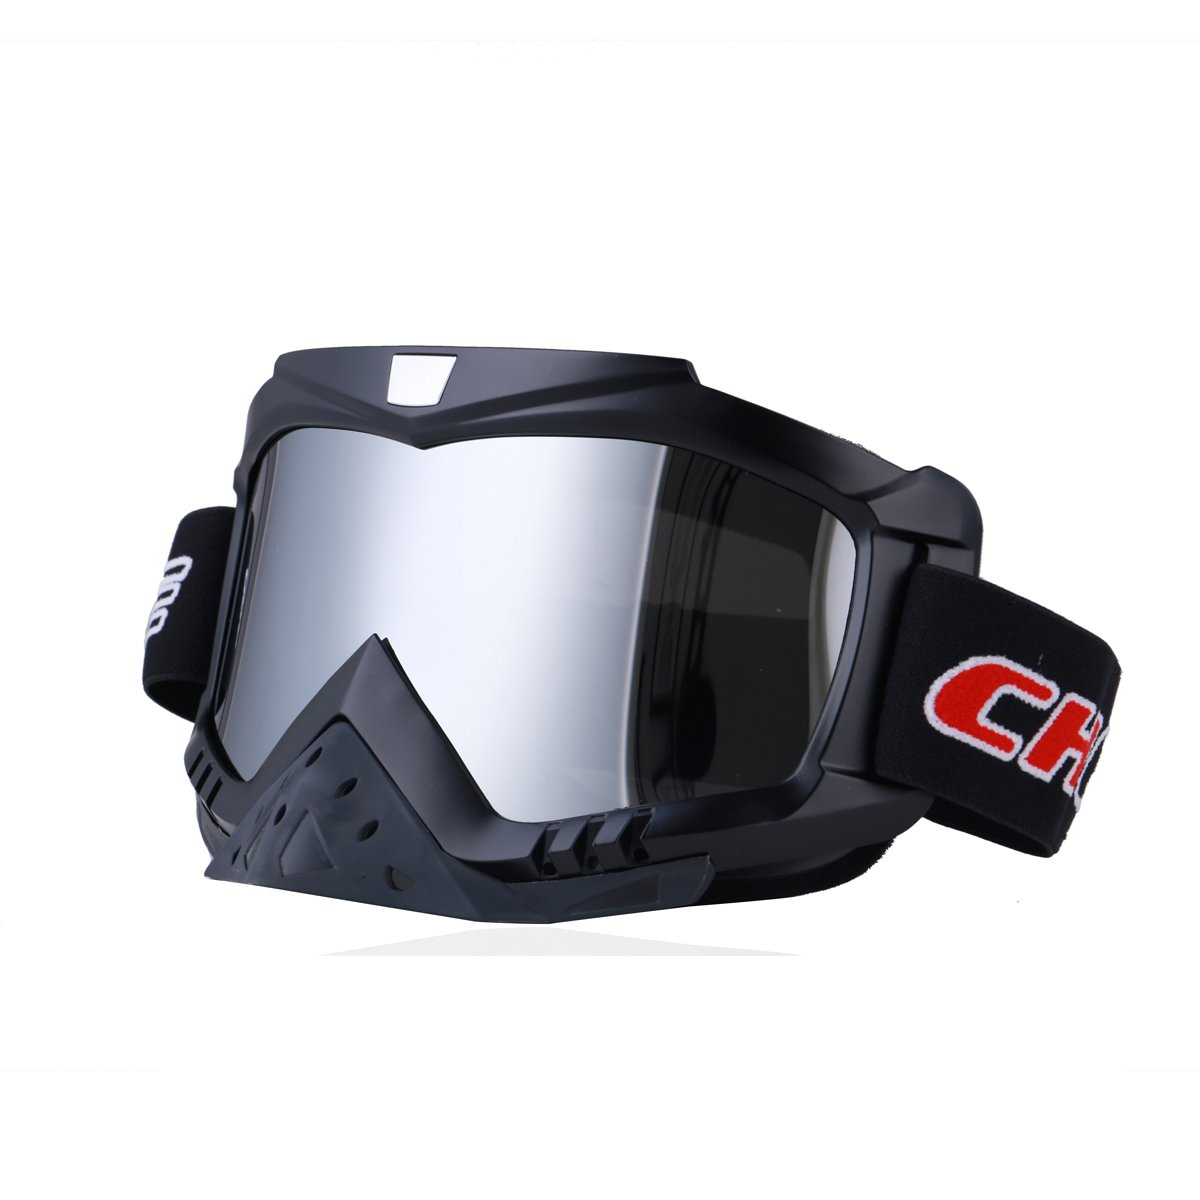 Madbike Motorcycle motocross goggles Outdoor sports Dirt Bike ATV MX Off-Road Goggles MADBIKE RACING EQUIPMENT MX655-BK